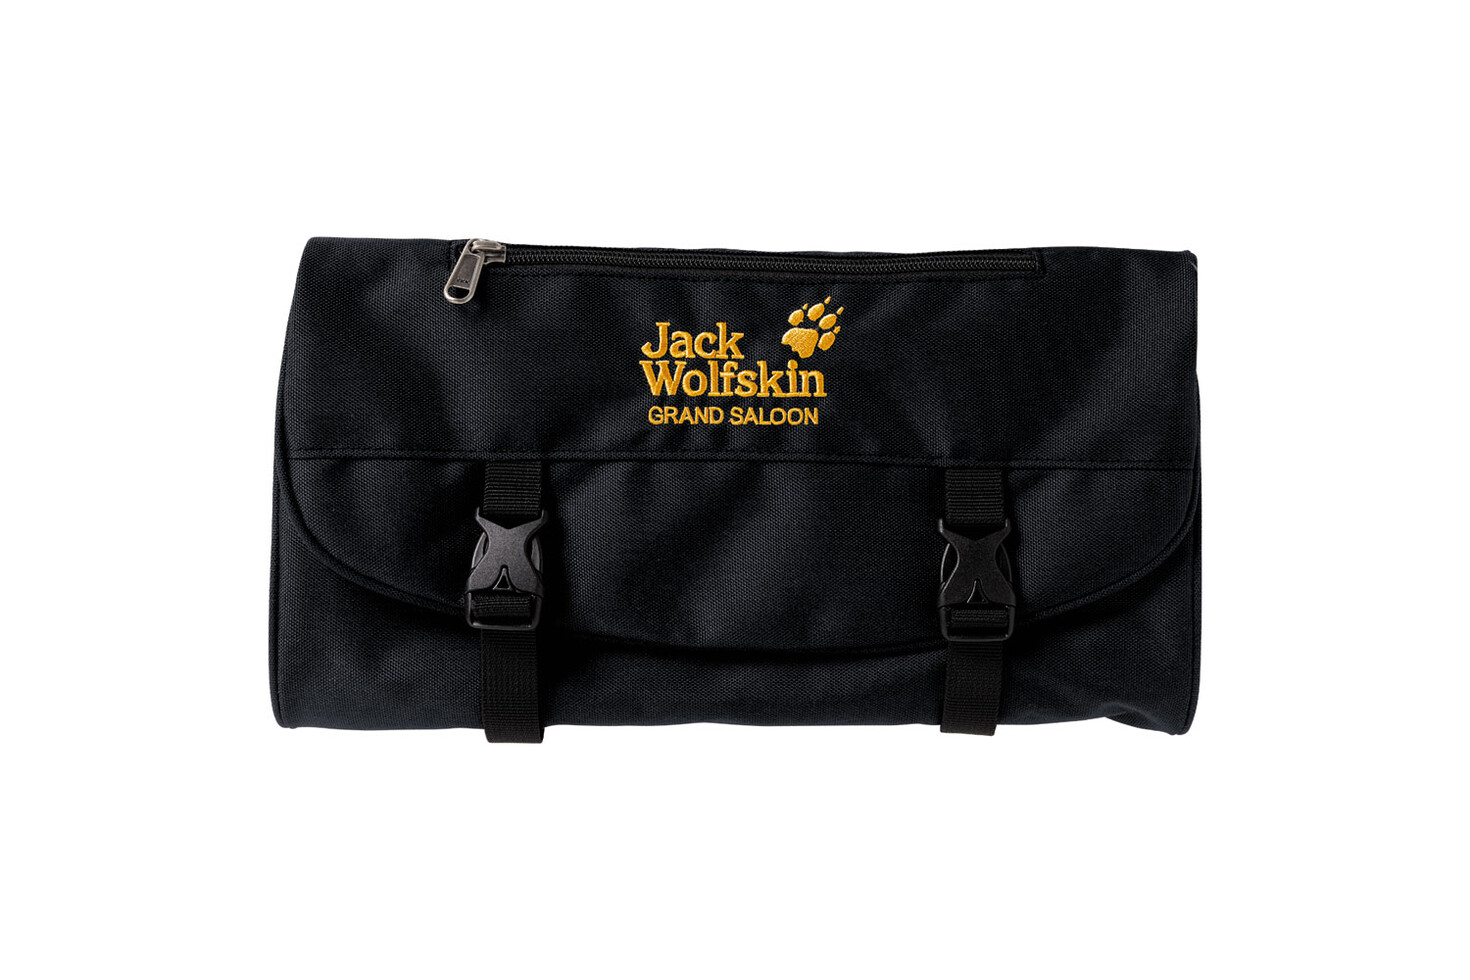 Jack Wolfskin Grand Saloon black